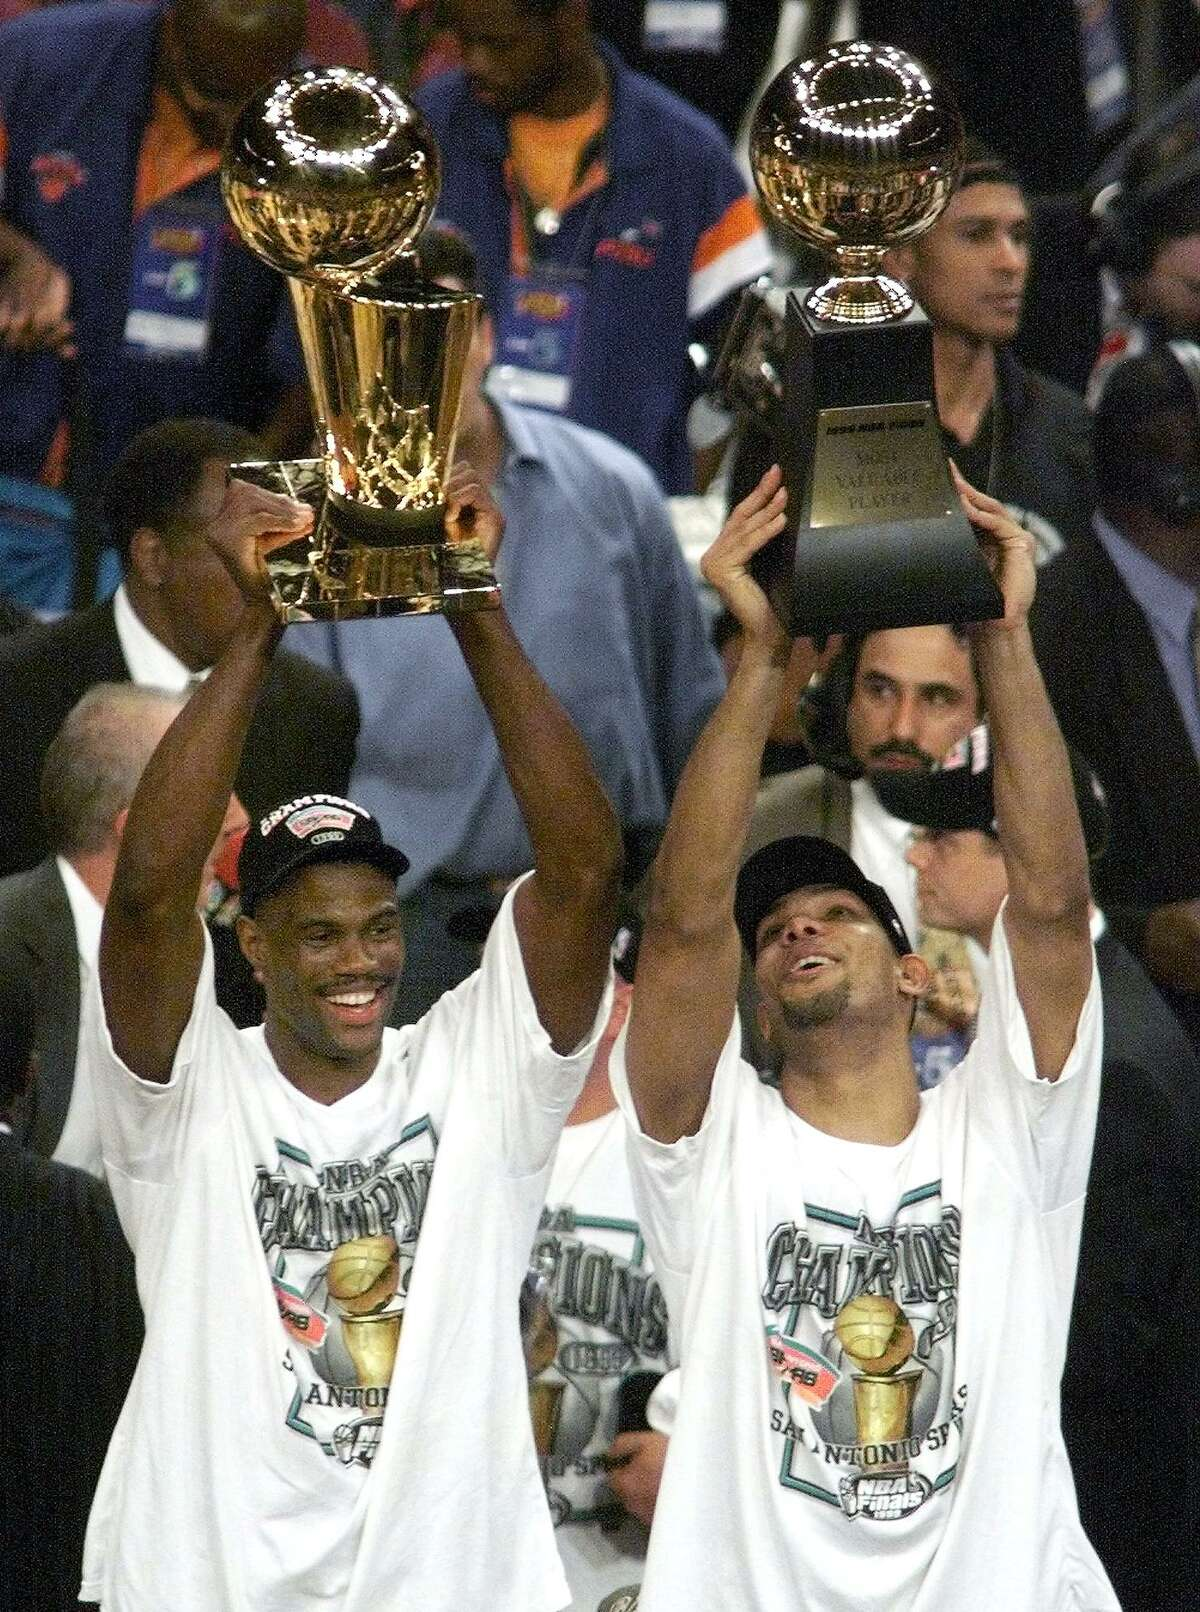 NEW YORK, UNITED STATES: Tim Duncan (R) of the San Antonio Spurs holds the MVP trophy as David Robinson holds the championship trophy 25 June, 1999, after the Suprs won game five of the NBA Finals against the New York Knicks at Madison Square Garden in New York, NY. The Spurs won the game 78-77 to win the series four games to one. (ELECTRONIC IMAGE) AFP PHOTO/Timothy A. CLARY (Photo credit should read TIMOTHY A. CLARY/AFP/Getty Images)